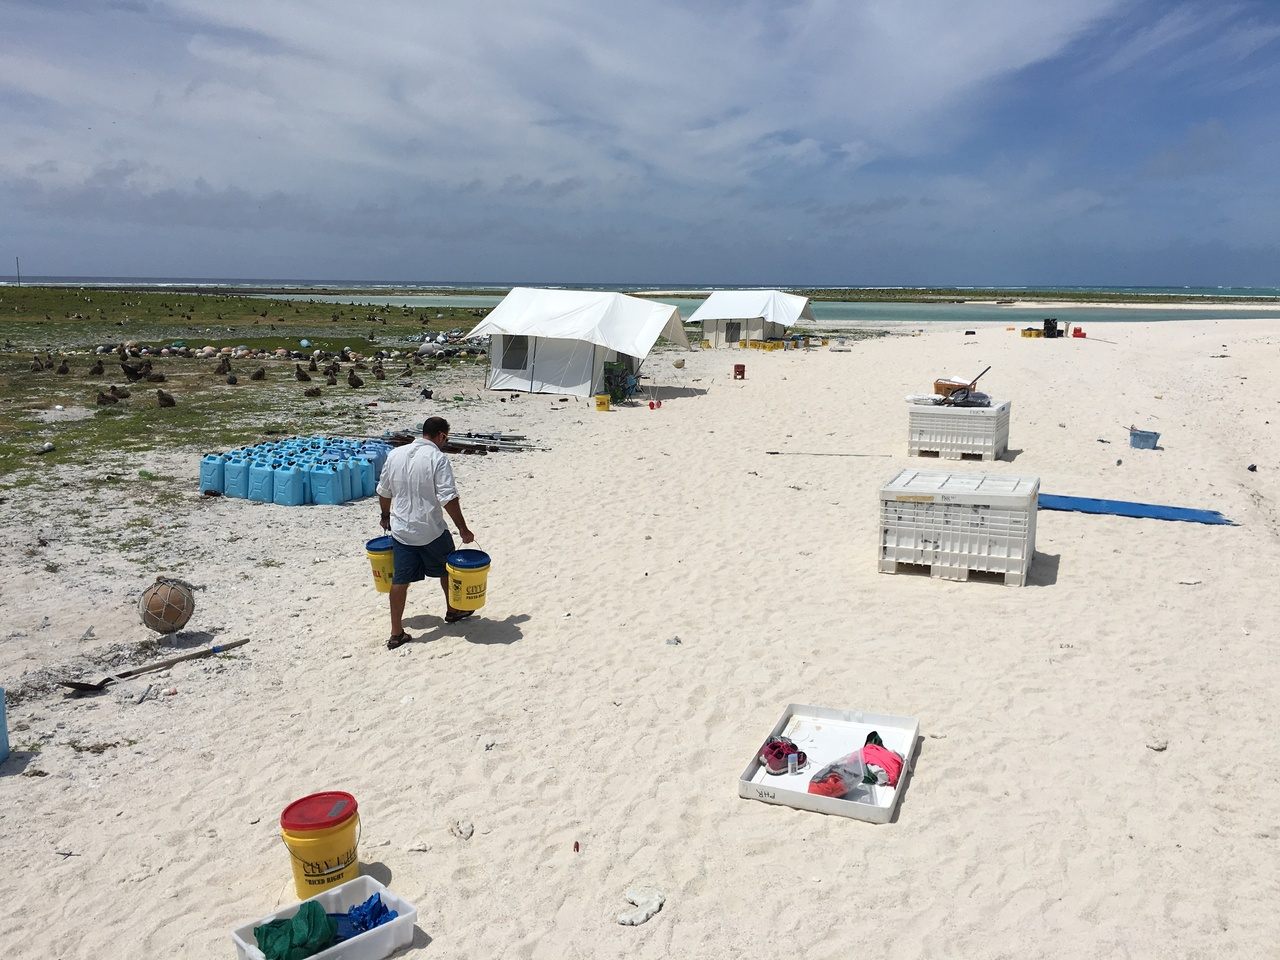 Field scientists bringing gear to set-up field camps on Laysan Island.